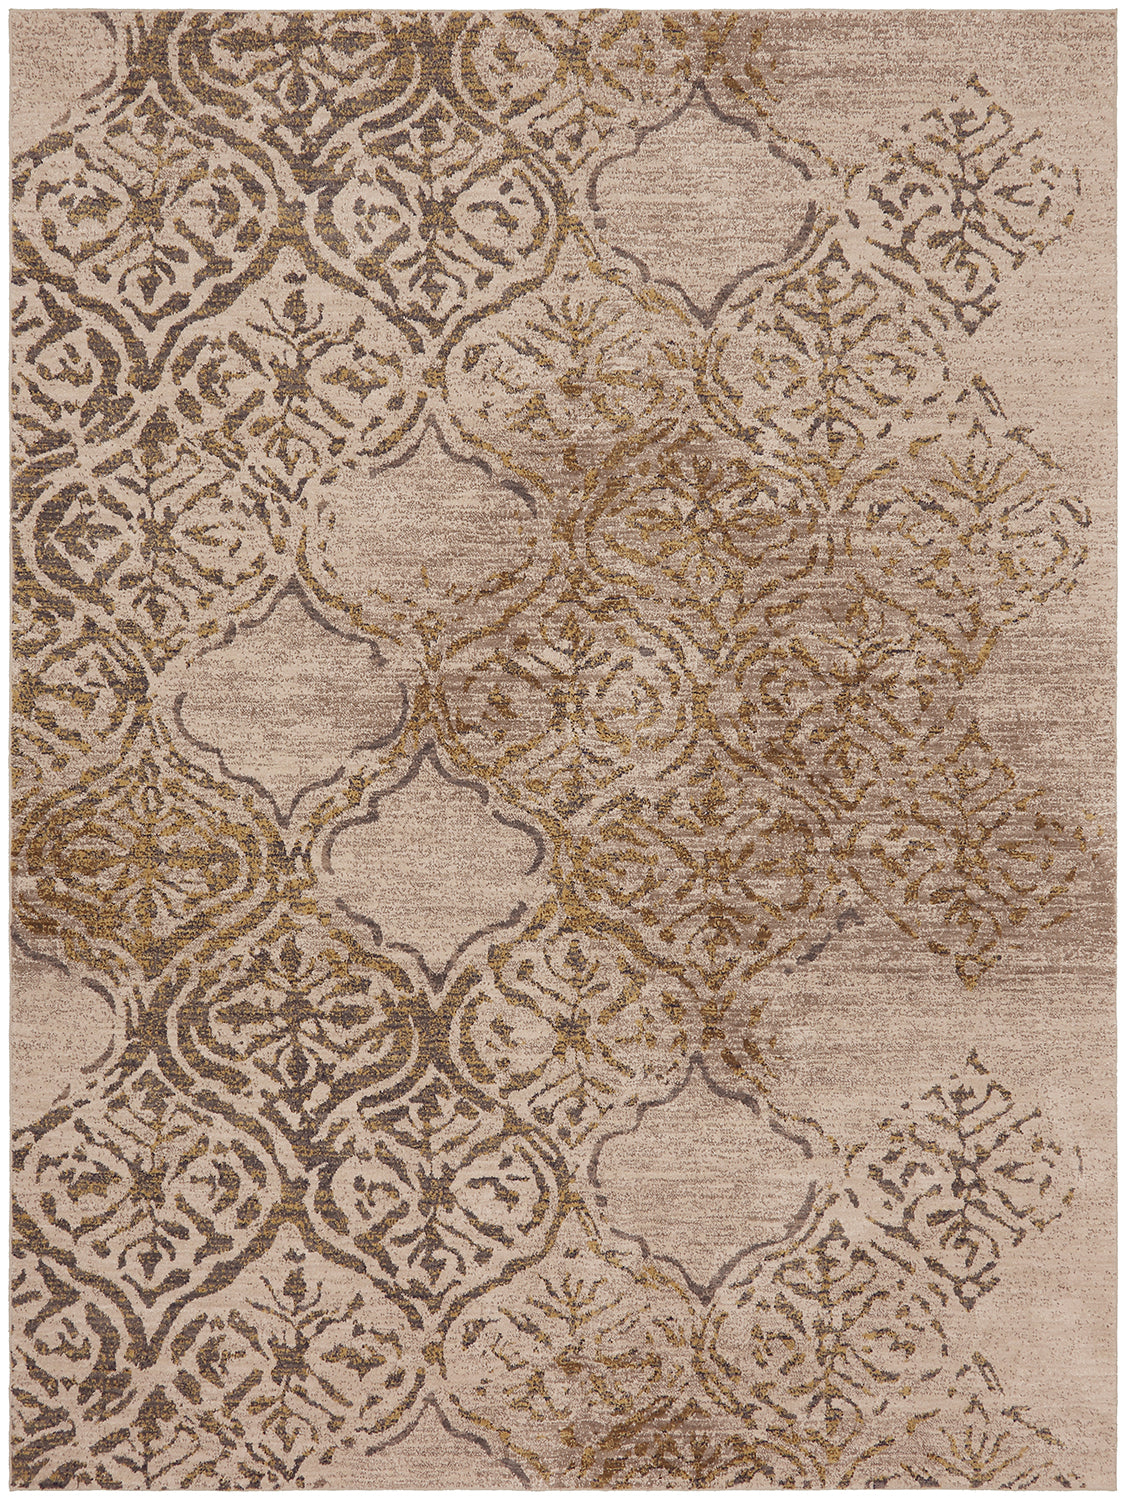 Karastan Cosmopolitan Zendaya Desert Area Rug by Virginia Langley main image